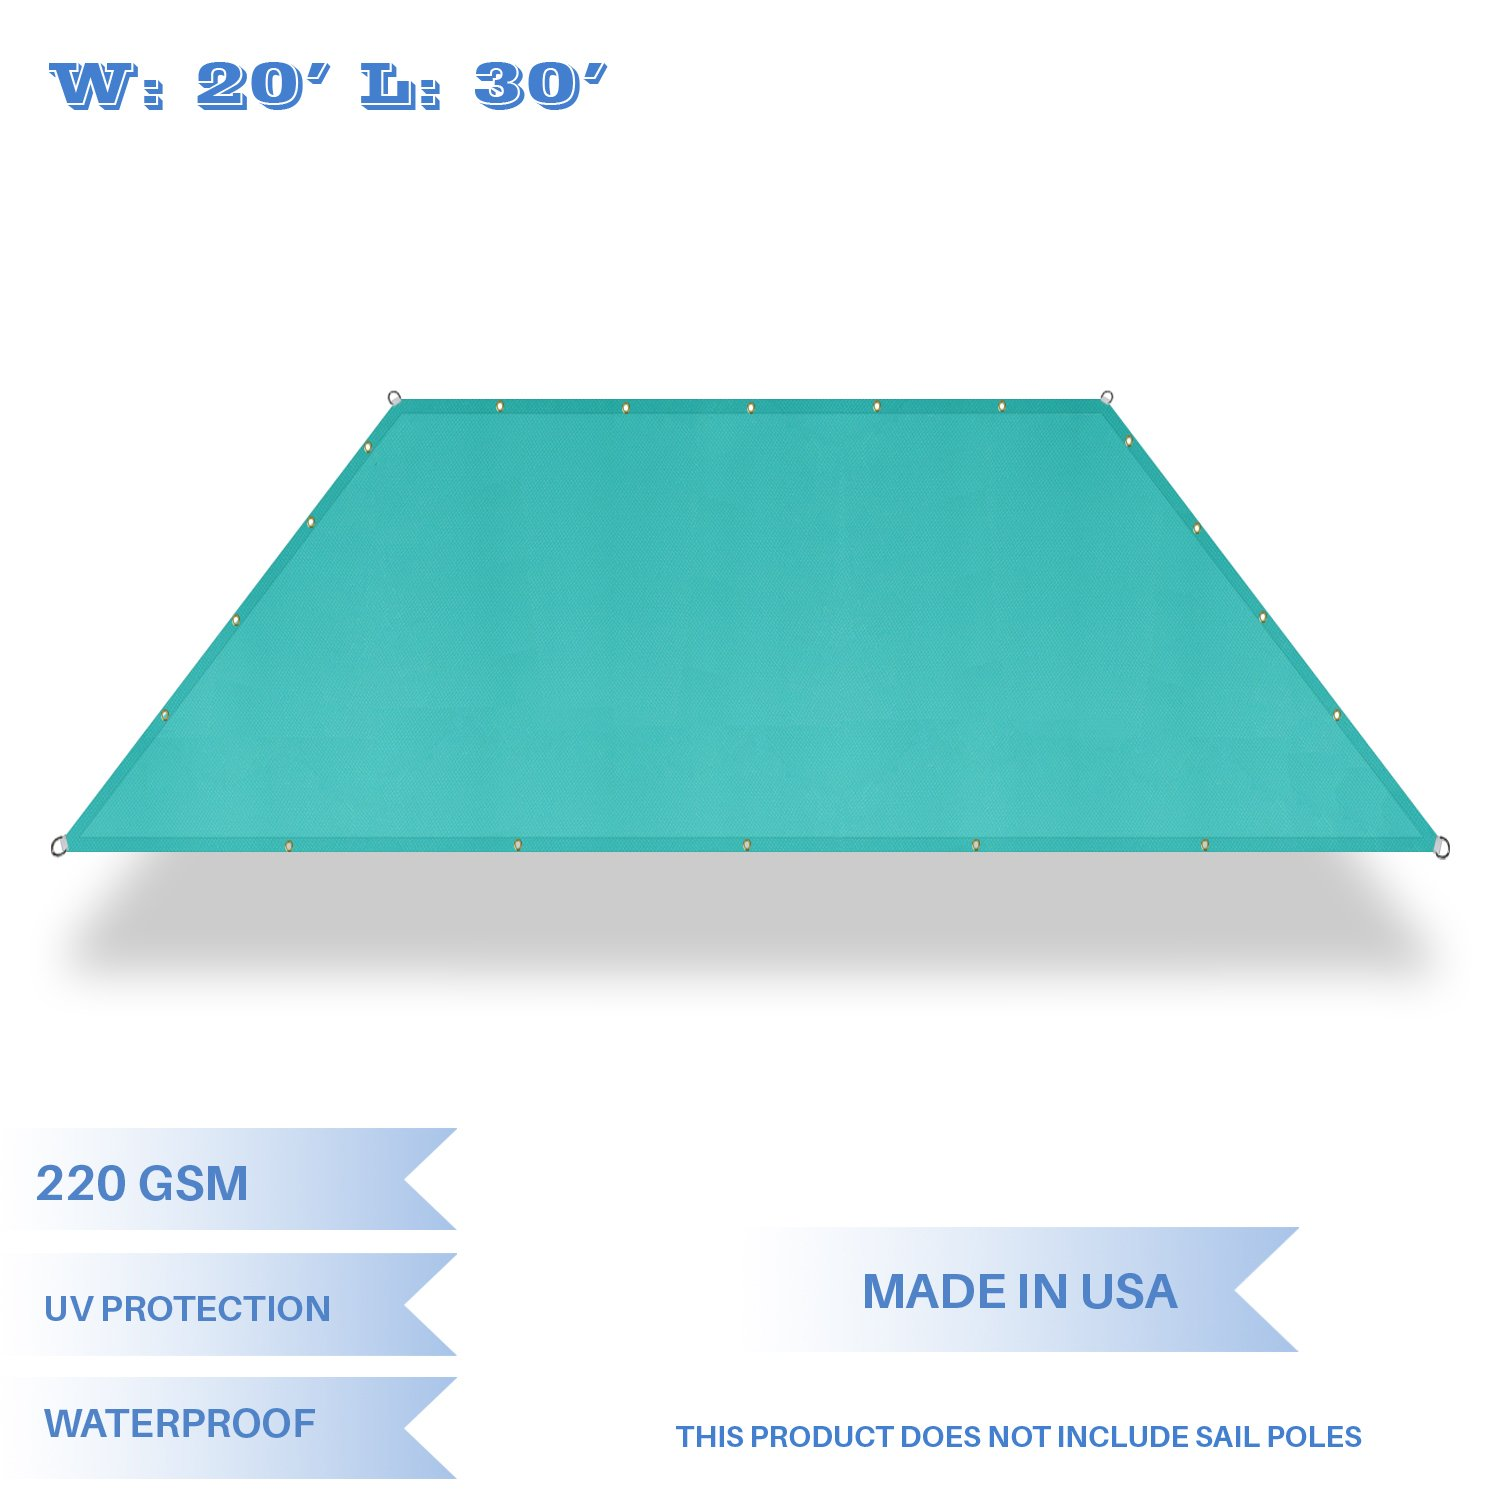 E&K Sunrise 20' x 30' Waterproof Sun Shade Sail-Turquoise Green Straight Edge Rectangle UV Block Durable Awning Perfect for Canopy Outdoor Garden Backyard-Customized Sizes Available